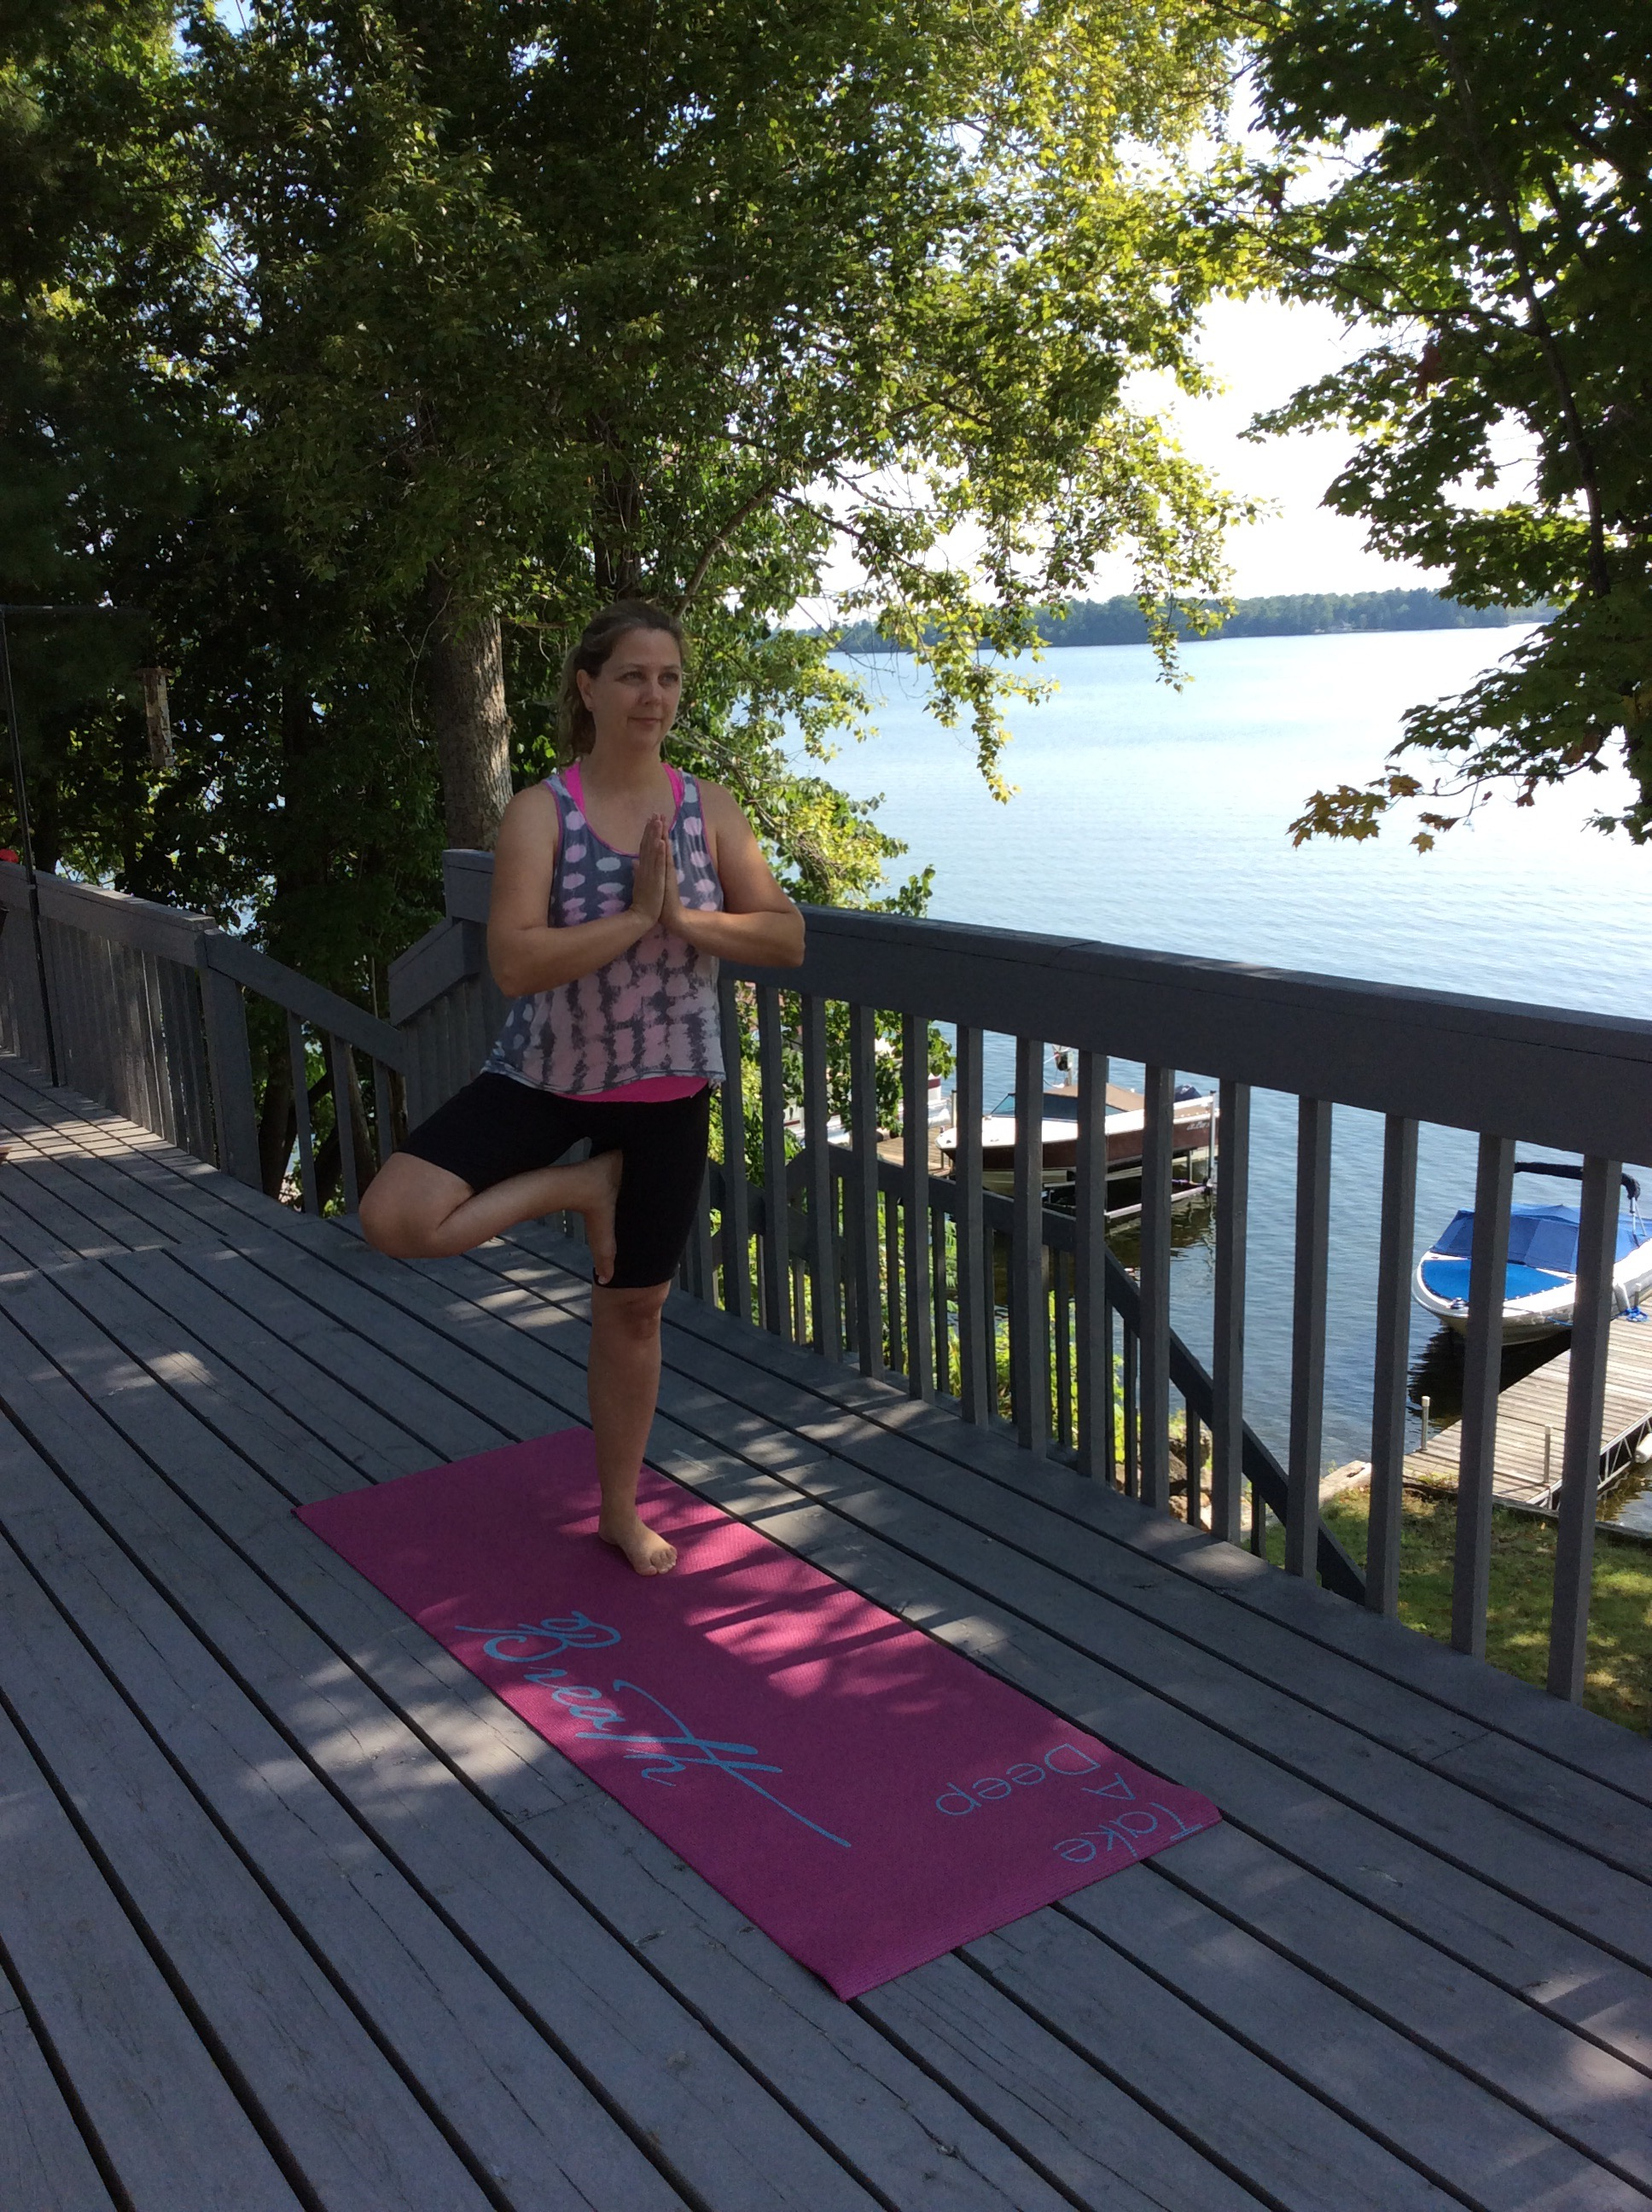 What is Loon Call Retreat? - Loon Call Retreat is a wellness destination. Yoga, mindfulness, nature, positive psychology, community and fun are combined to provide the perfect antidote to relax, laugh, rejuvenate and dream. The experience is a fusion of Lanark County charm and Asian influence.